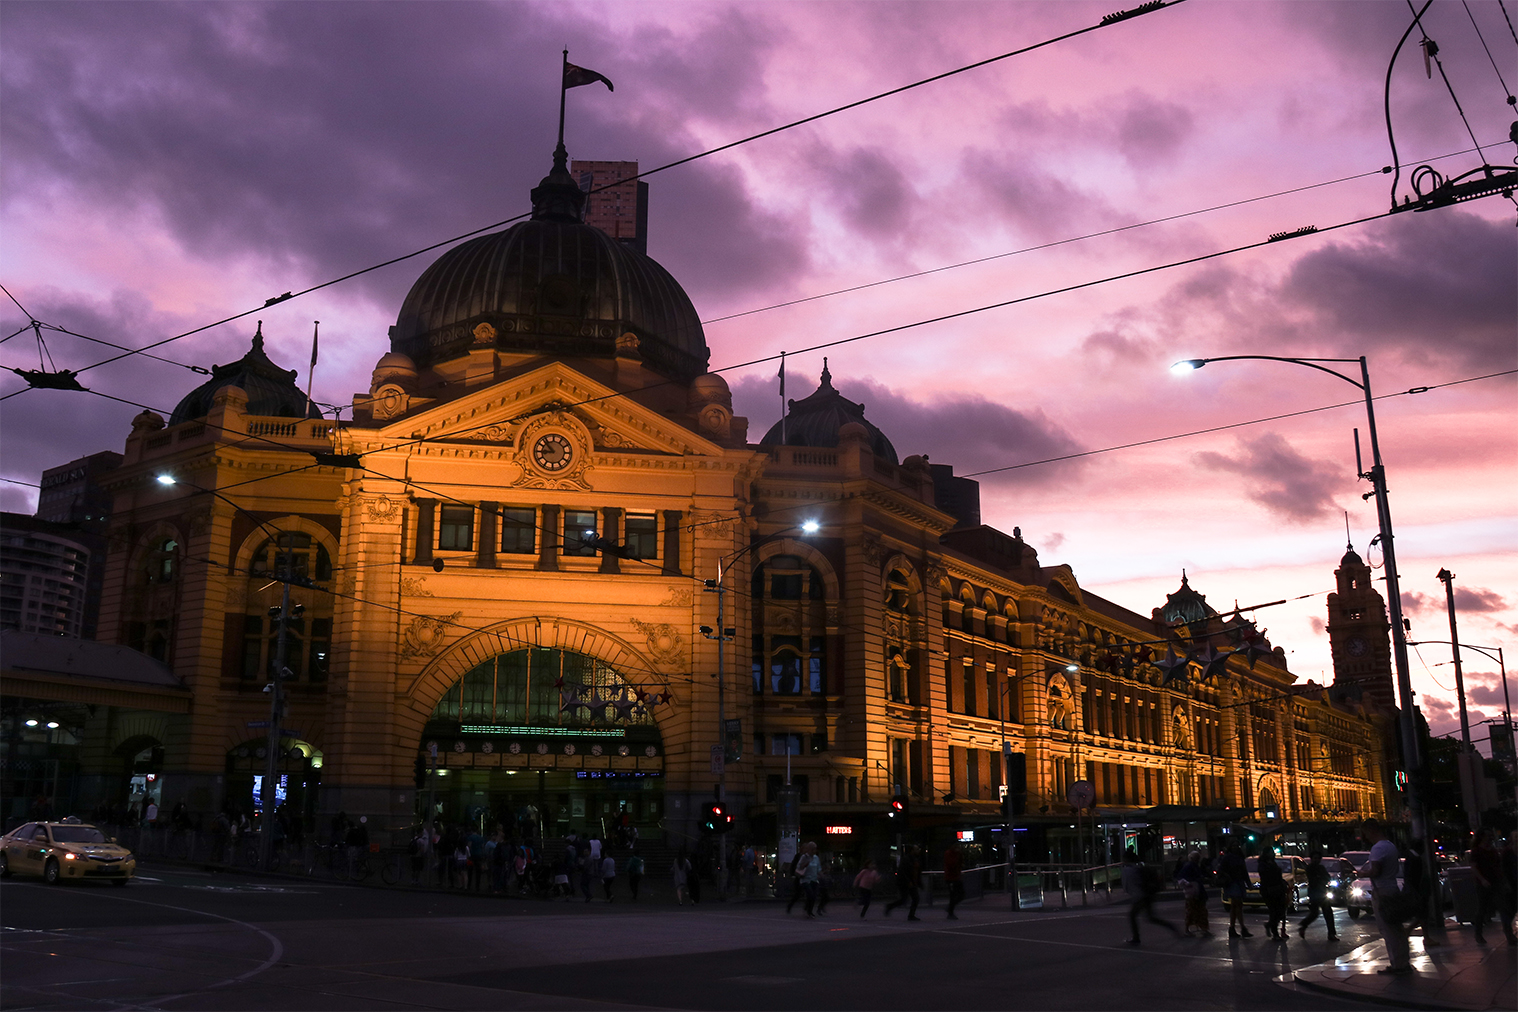 Melbourne, Flinders station